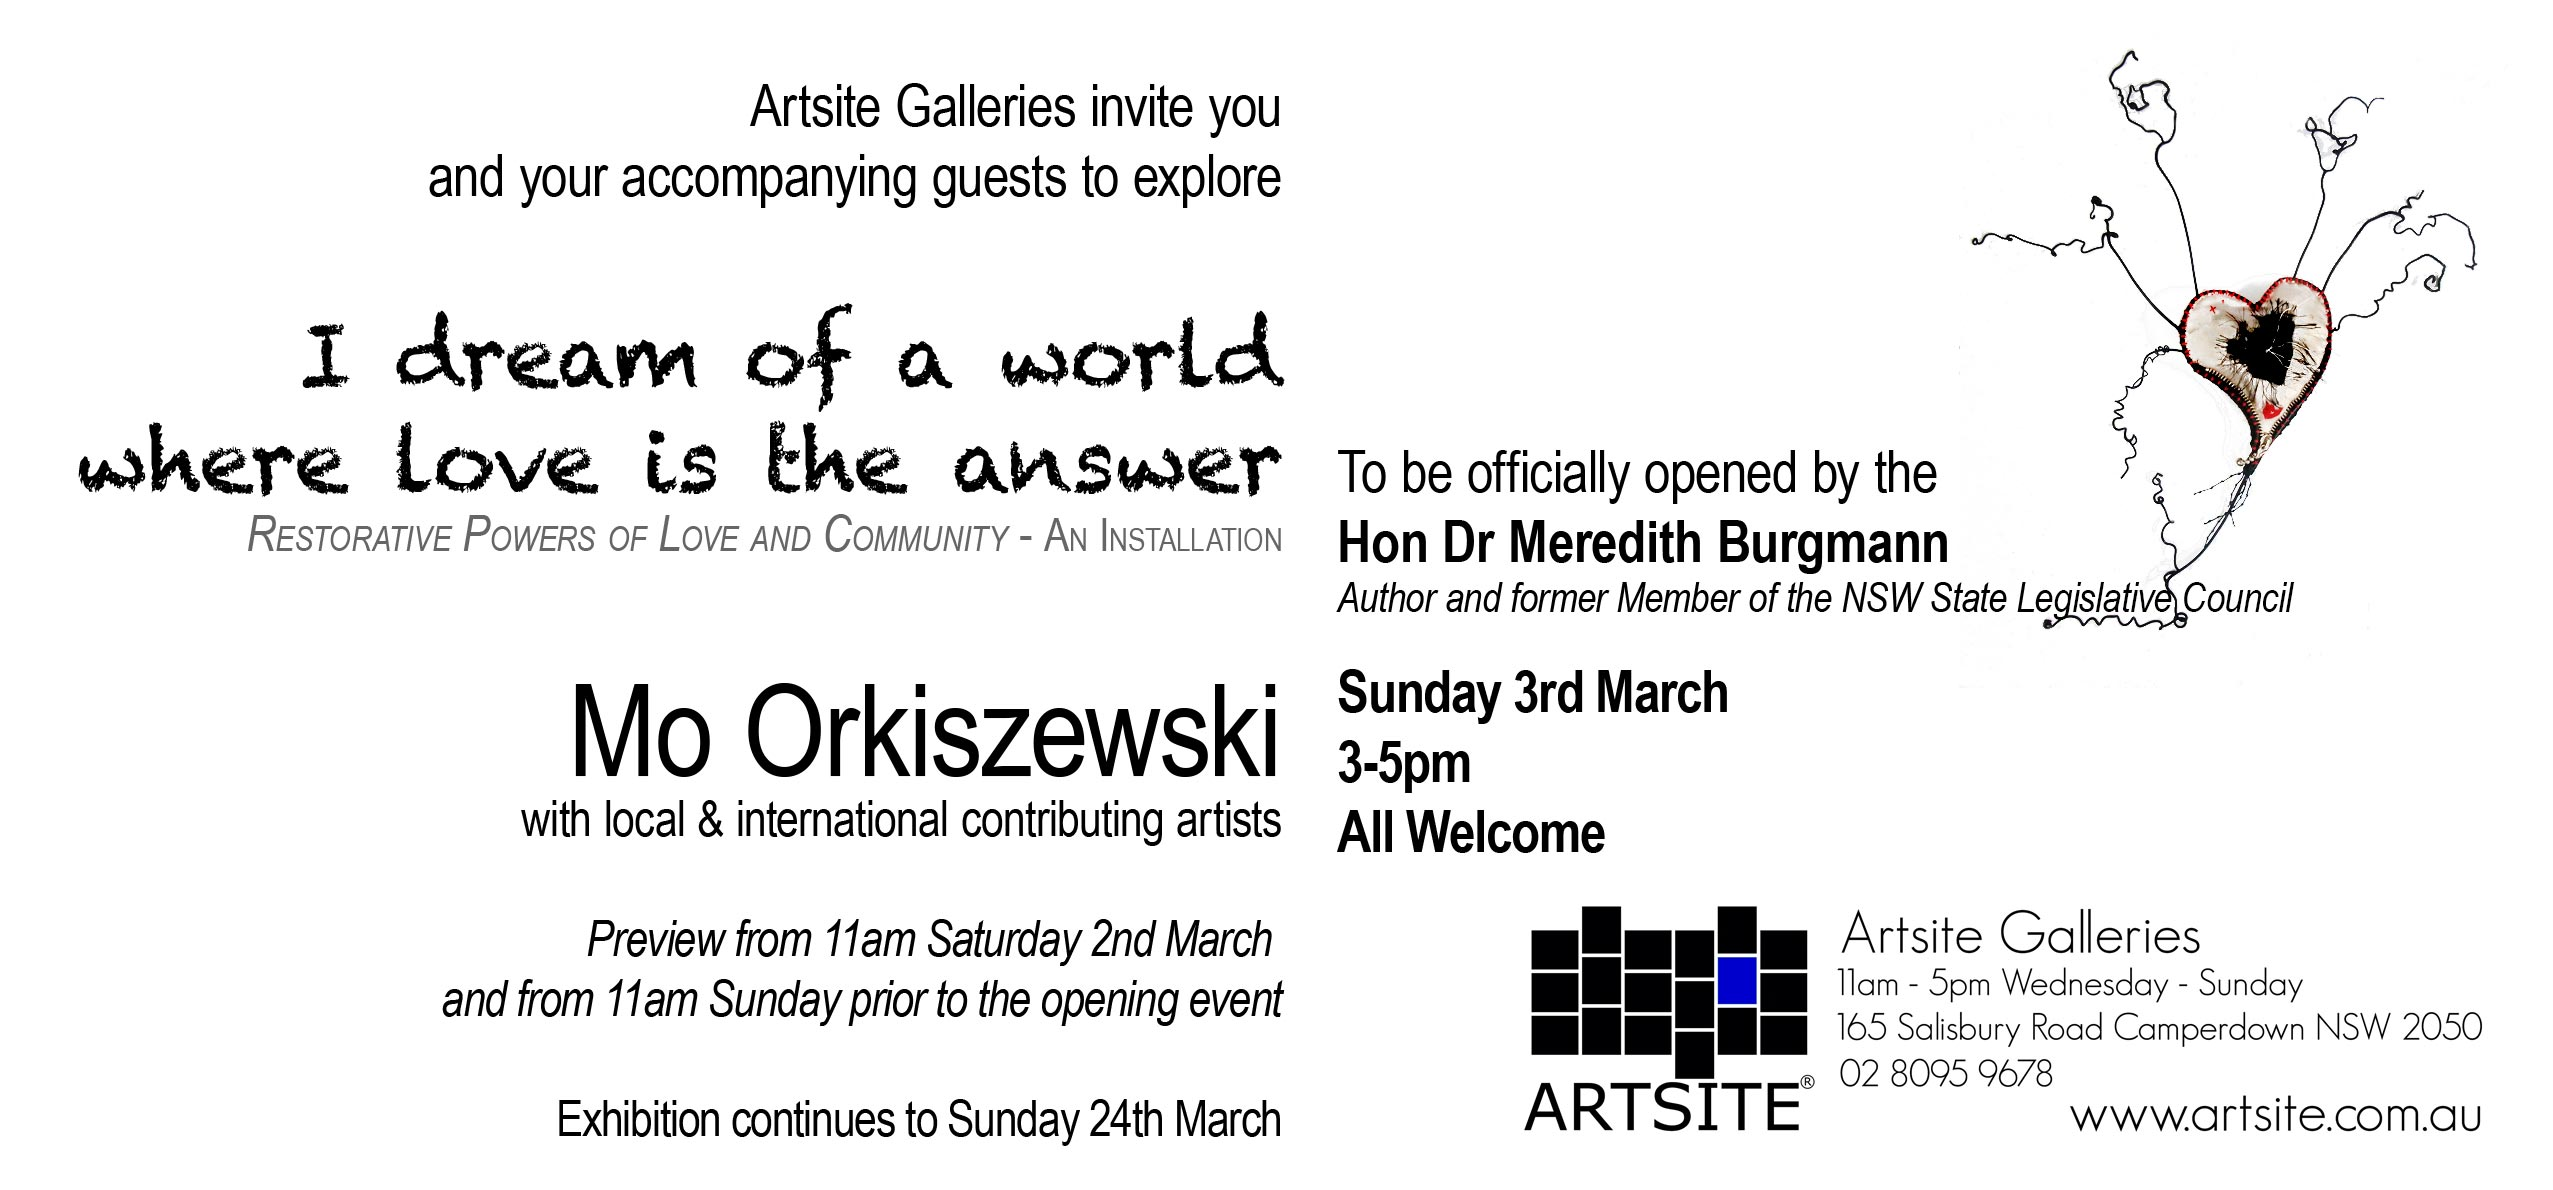 Artsite Gallery Exhibition | Gallery_2 | I dream of a world where love is the answer | Exploring the restorative powers of love and community | Mo Orkiszewski with local and international contributing artists | 02 - 24 March 2019